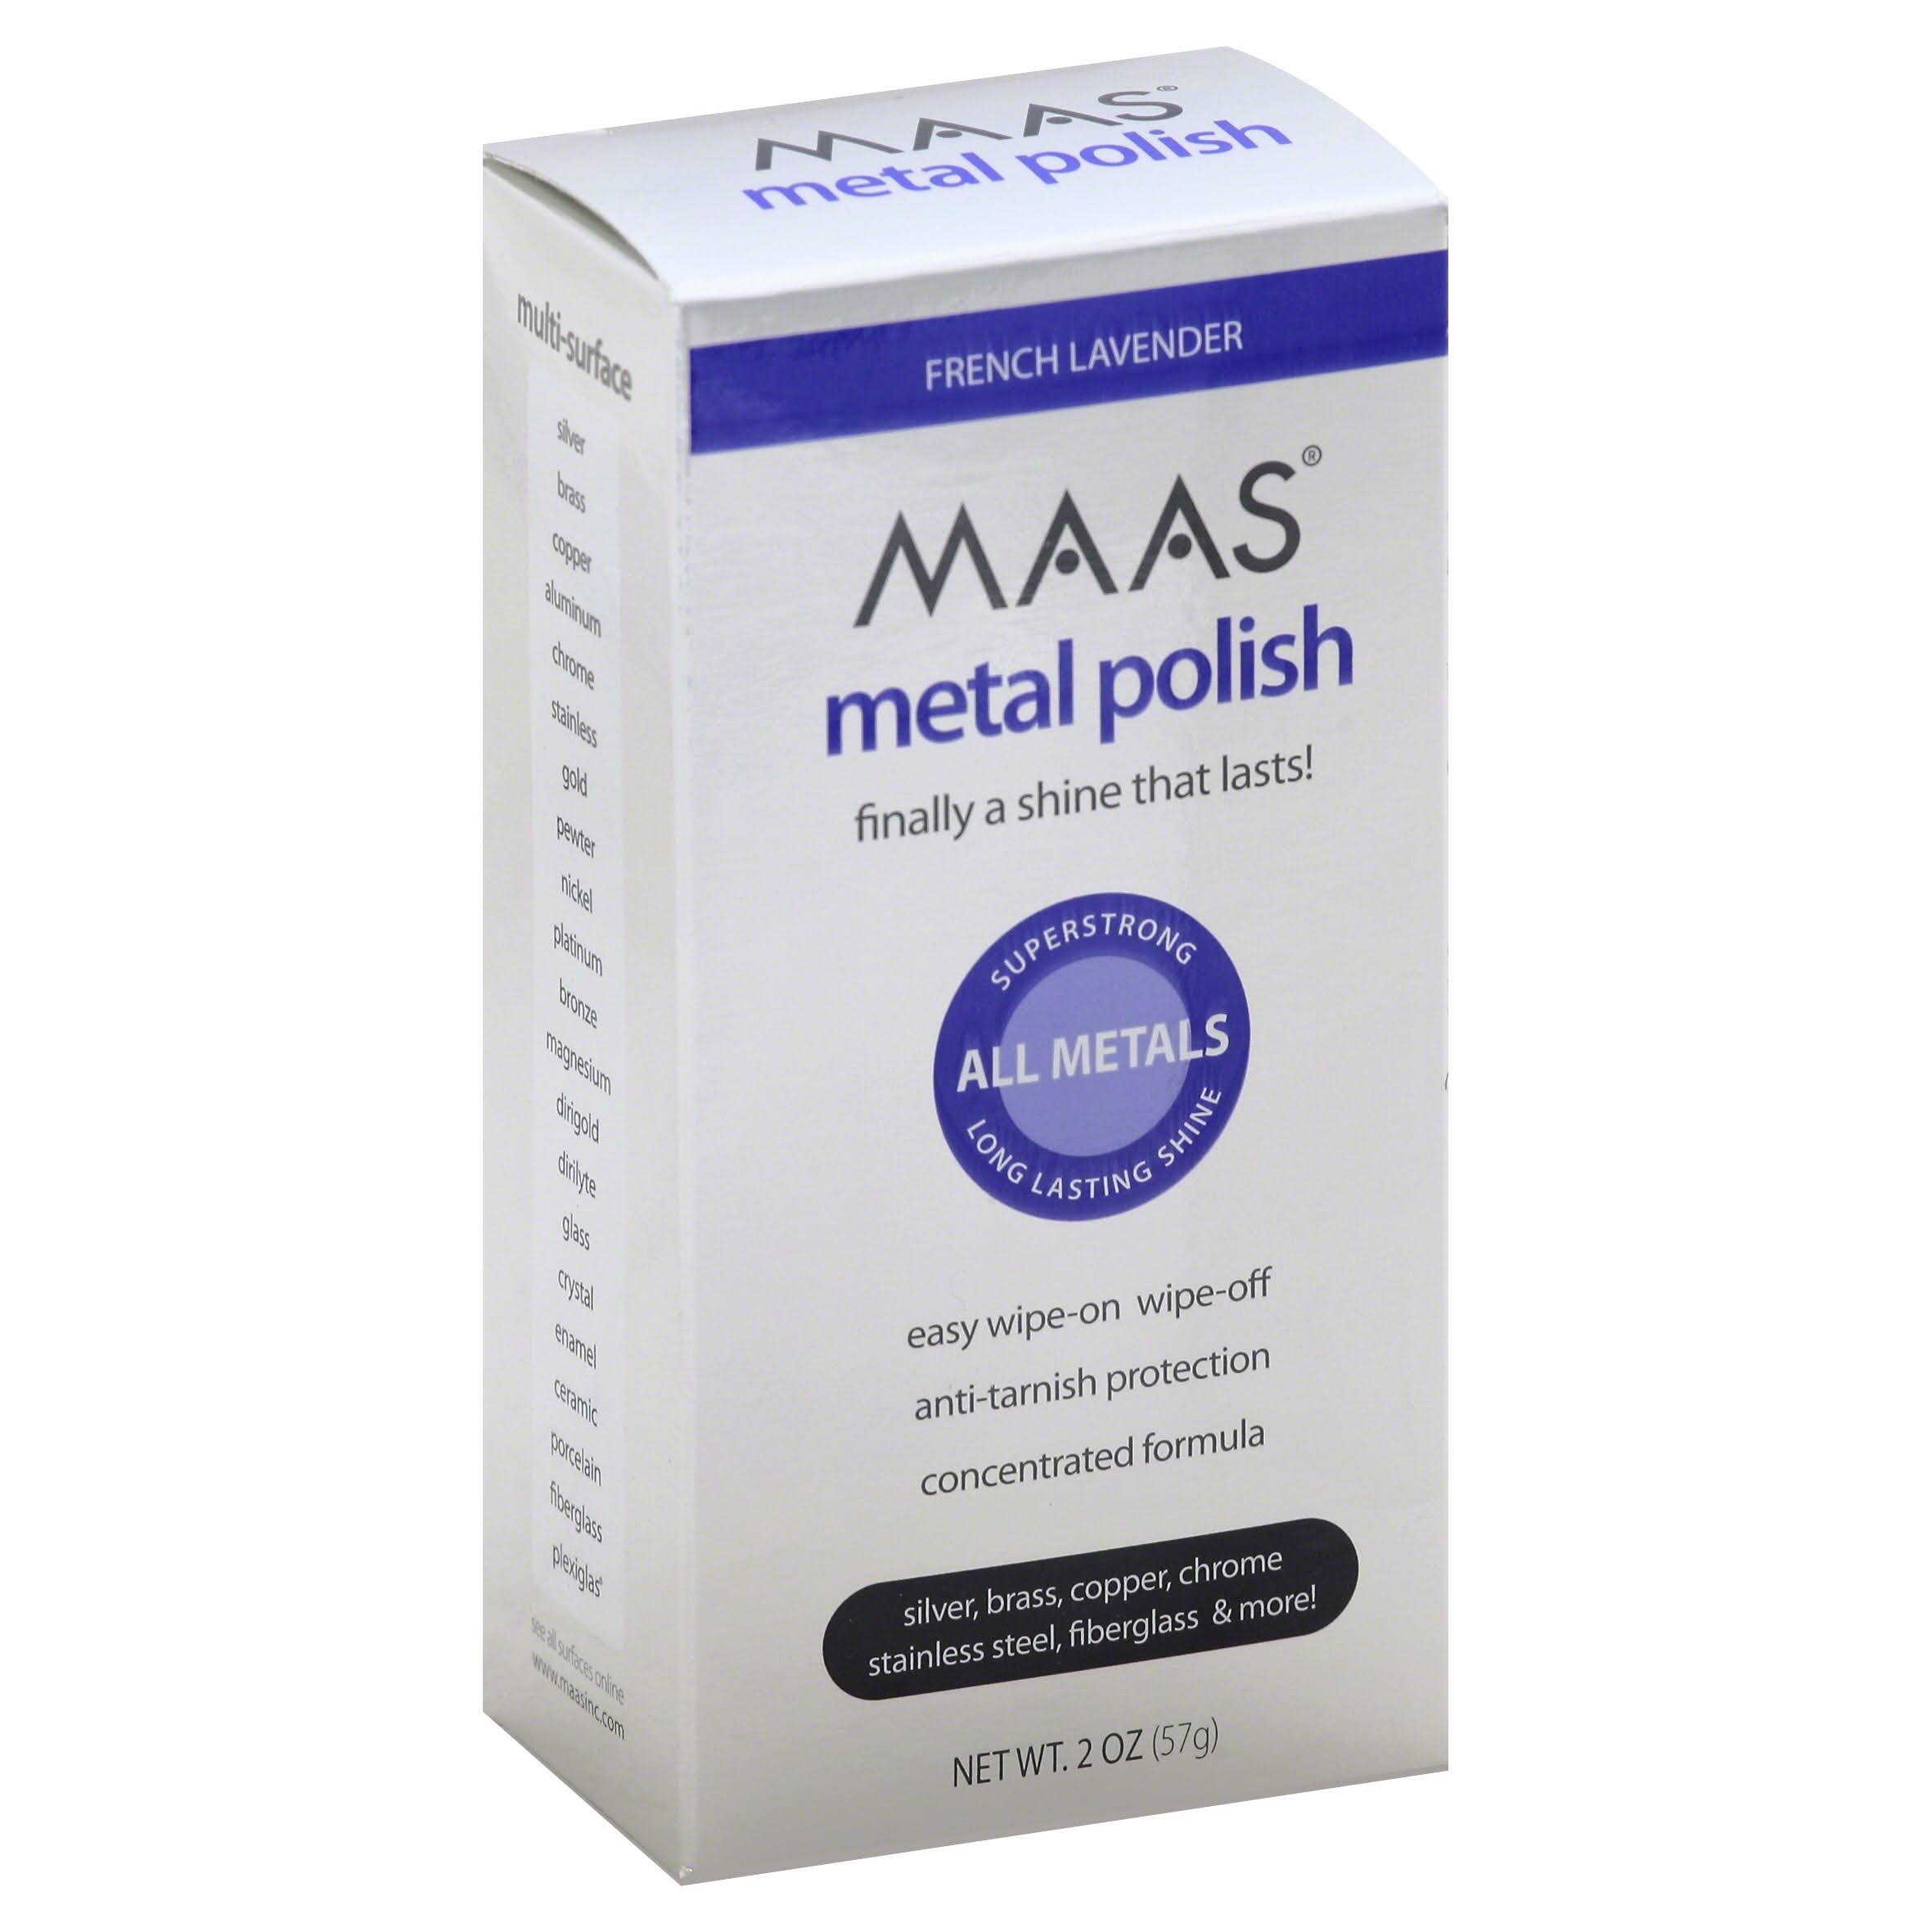 Maas Metal Polishing Creme - for All Metals, French Lavender, 2oz